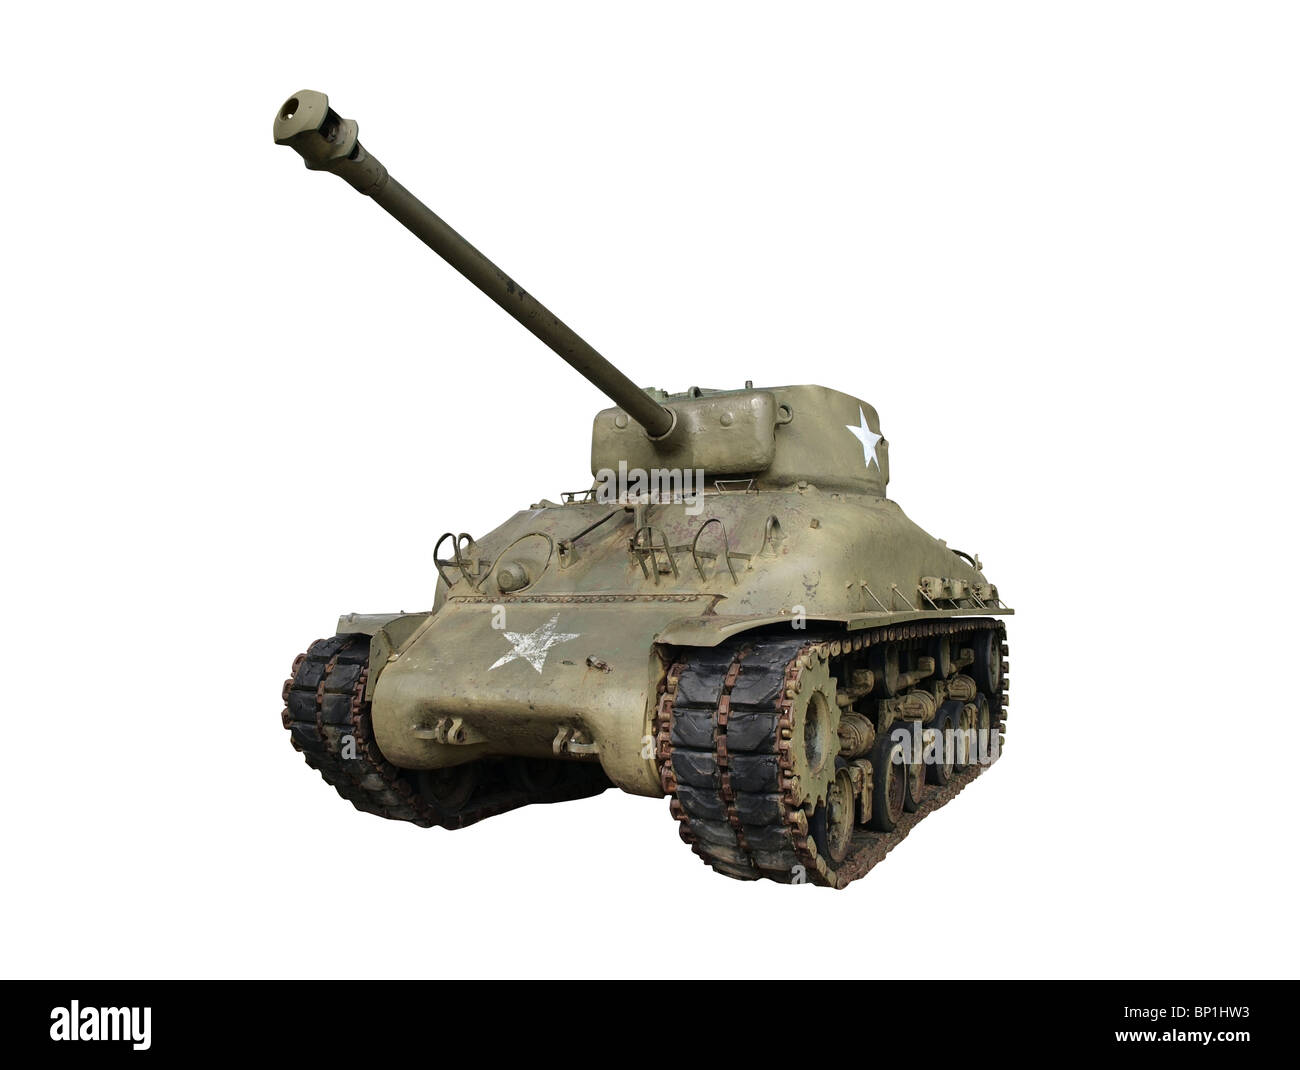 Vintage sherman tank from world war two. - Stock Image